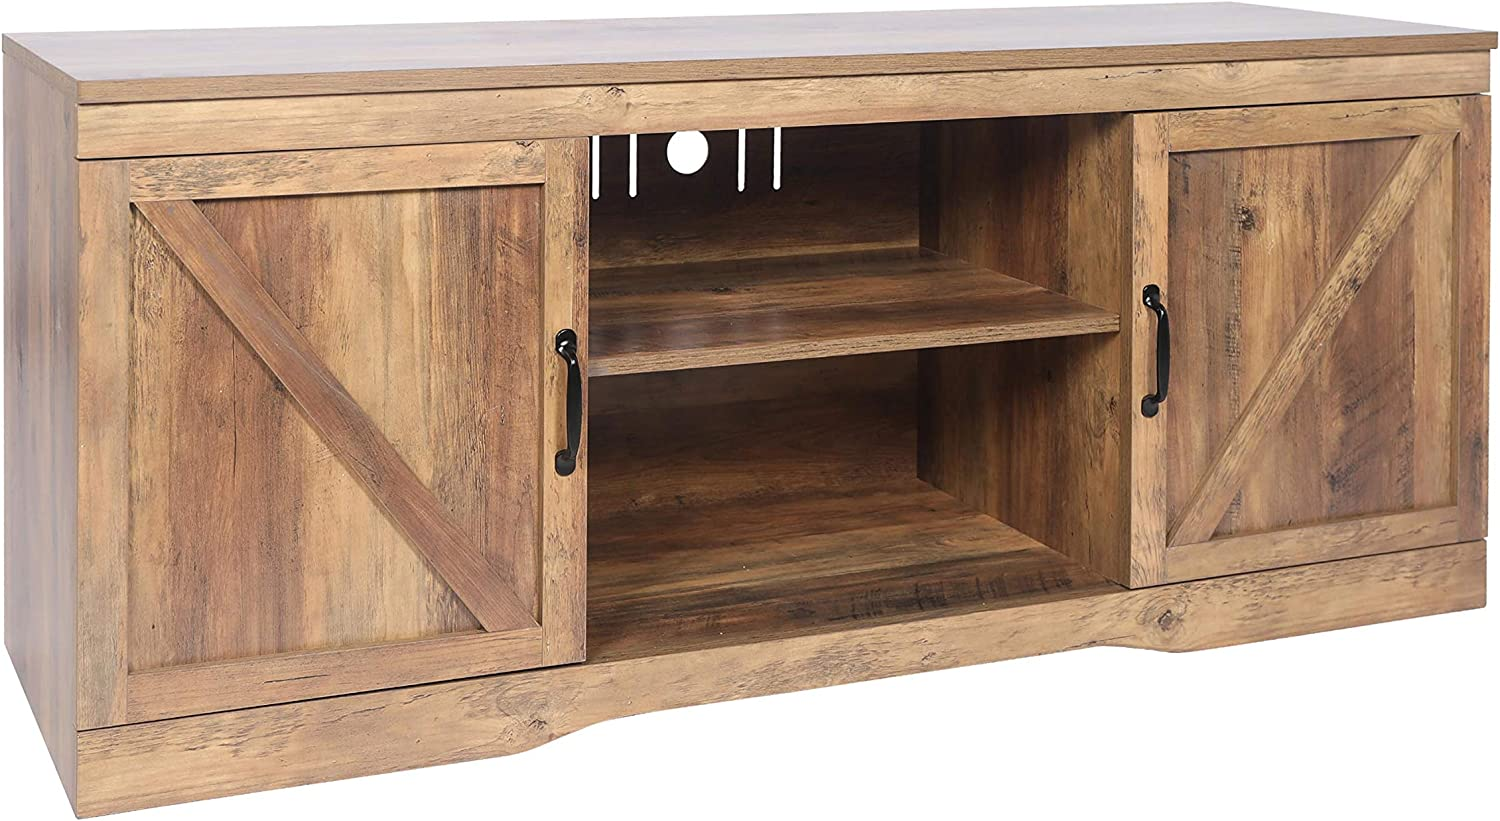 Media Console with Storage Doors,Entertainment Center,for Living Room Rustic Oak SCYL Color Your Life Barn Wooden TV Stand for TVs up to 65